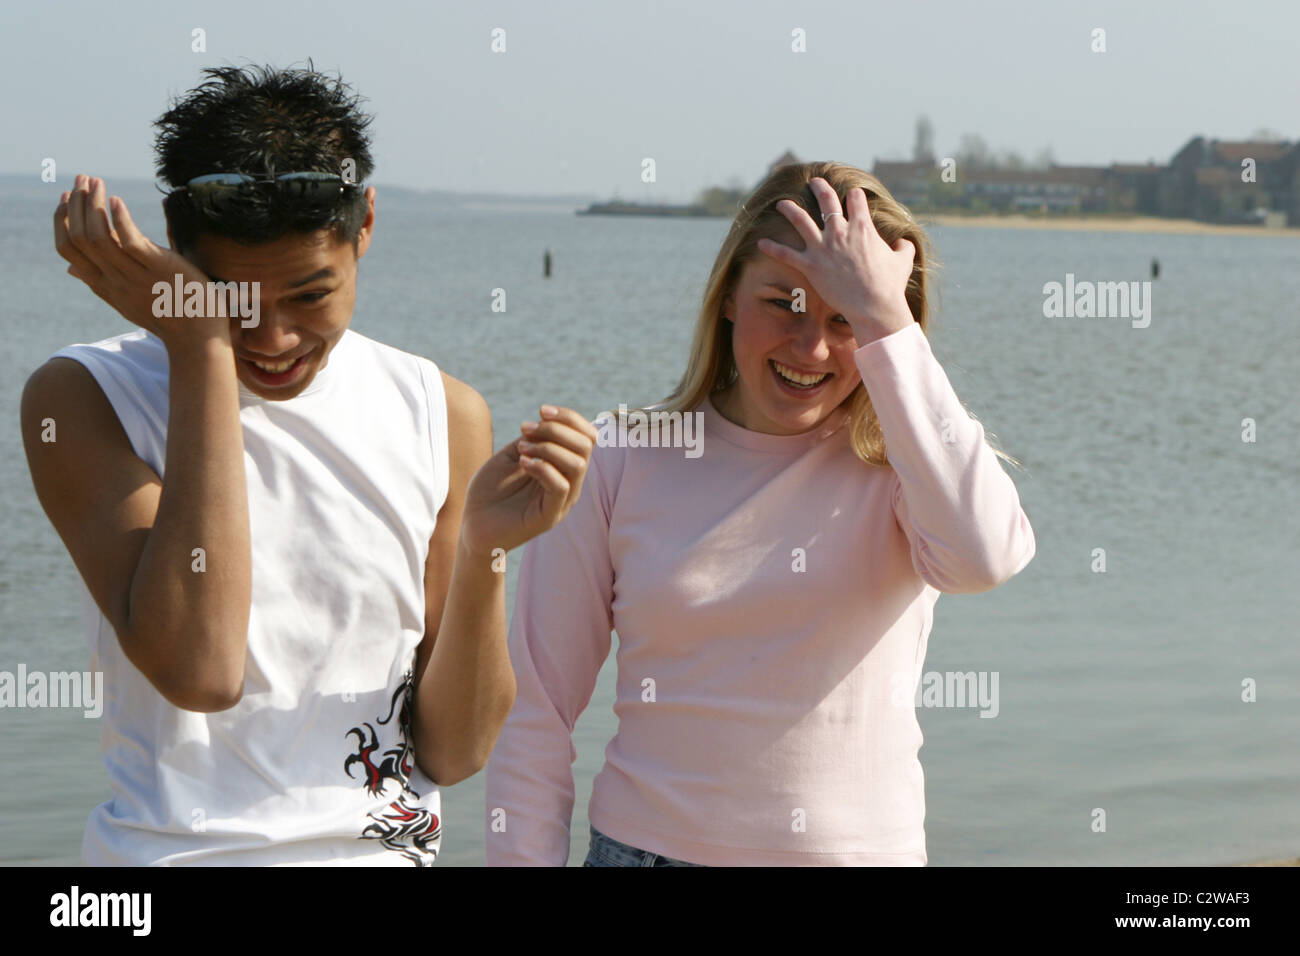 Man and woman laughing herself to tears - Stock Image